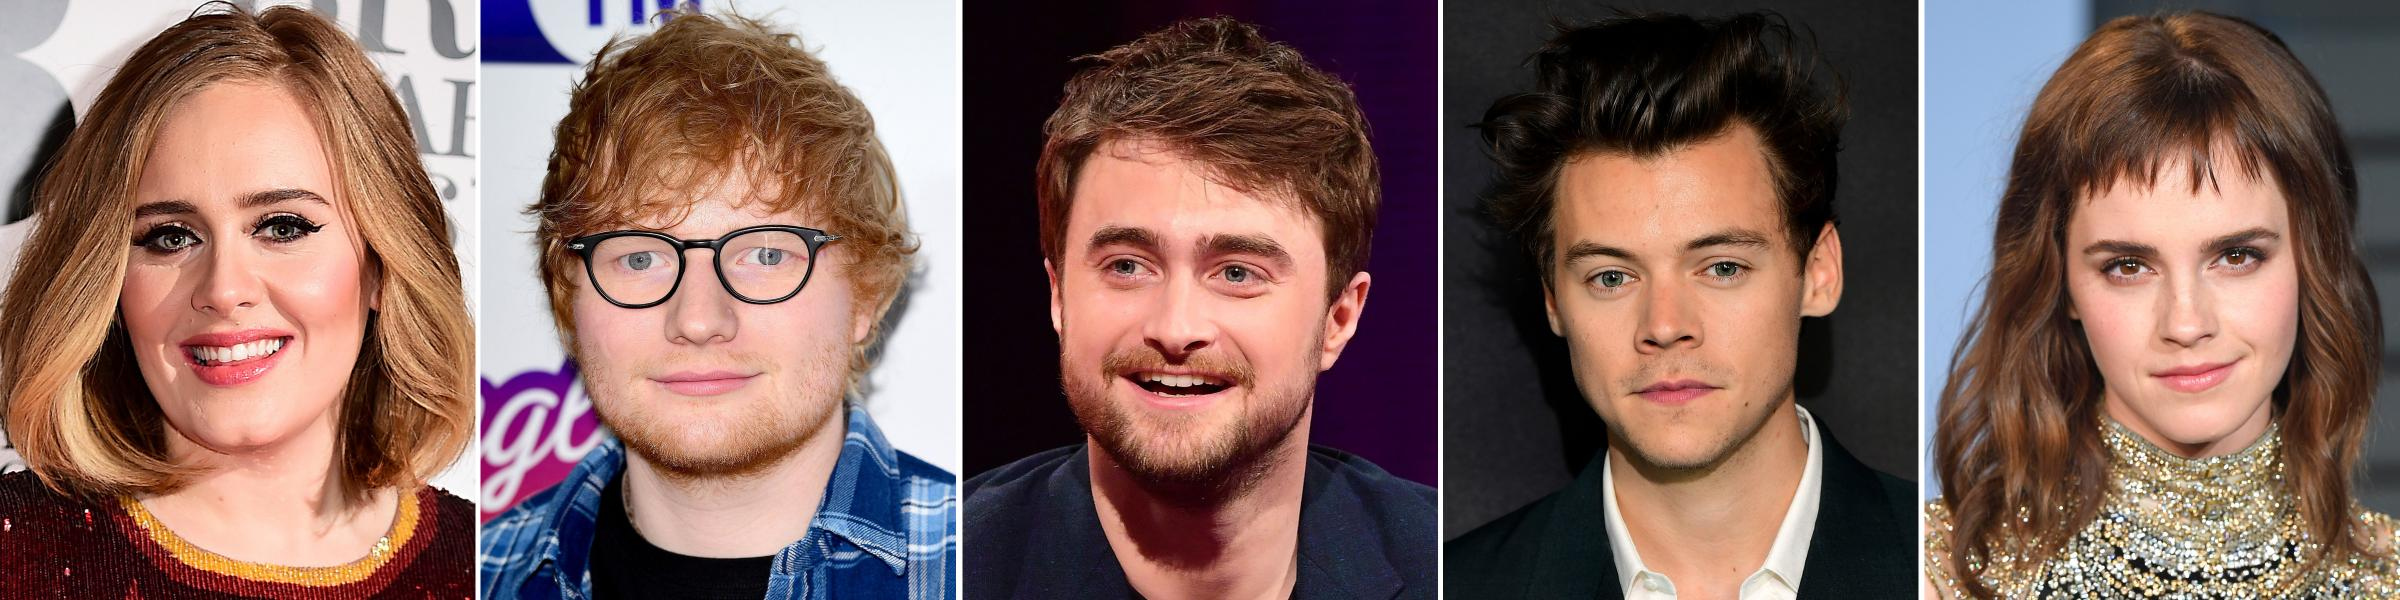 Embargoed to 0001 Tuesday October 30..File photos of (left to right) Adele, Ed Sheeran, Daniel Radcliffe, Harry Styles and Emma Watson, who fill the top five positions in heat magazine's annual guide to the UK's wealthiest stars aged 30 and under.